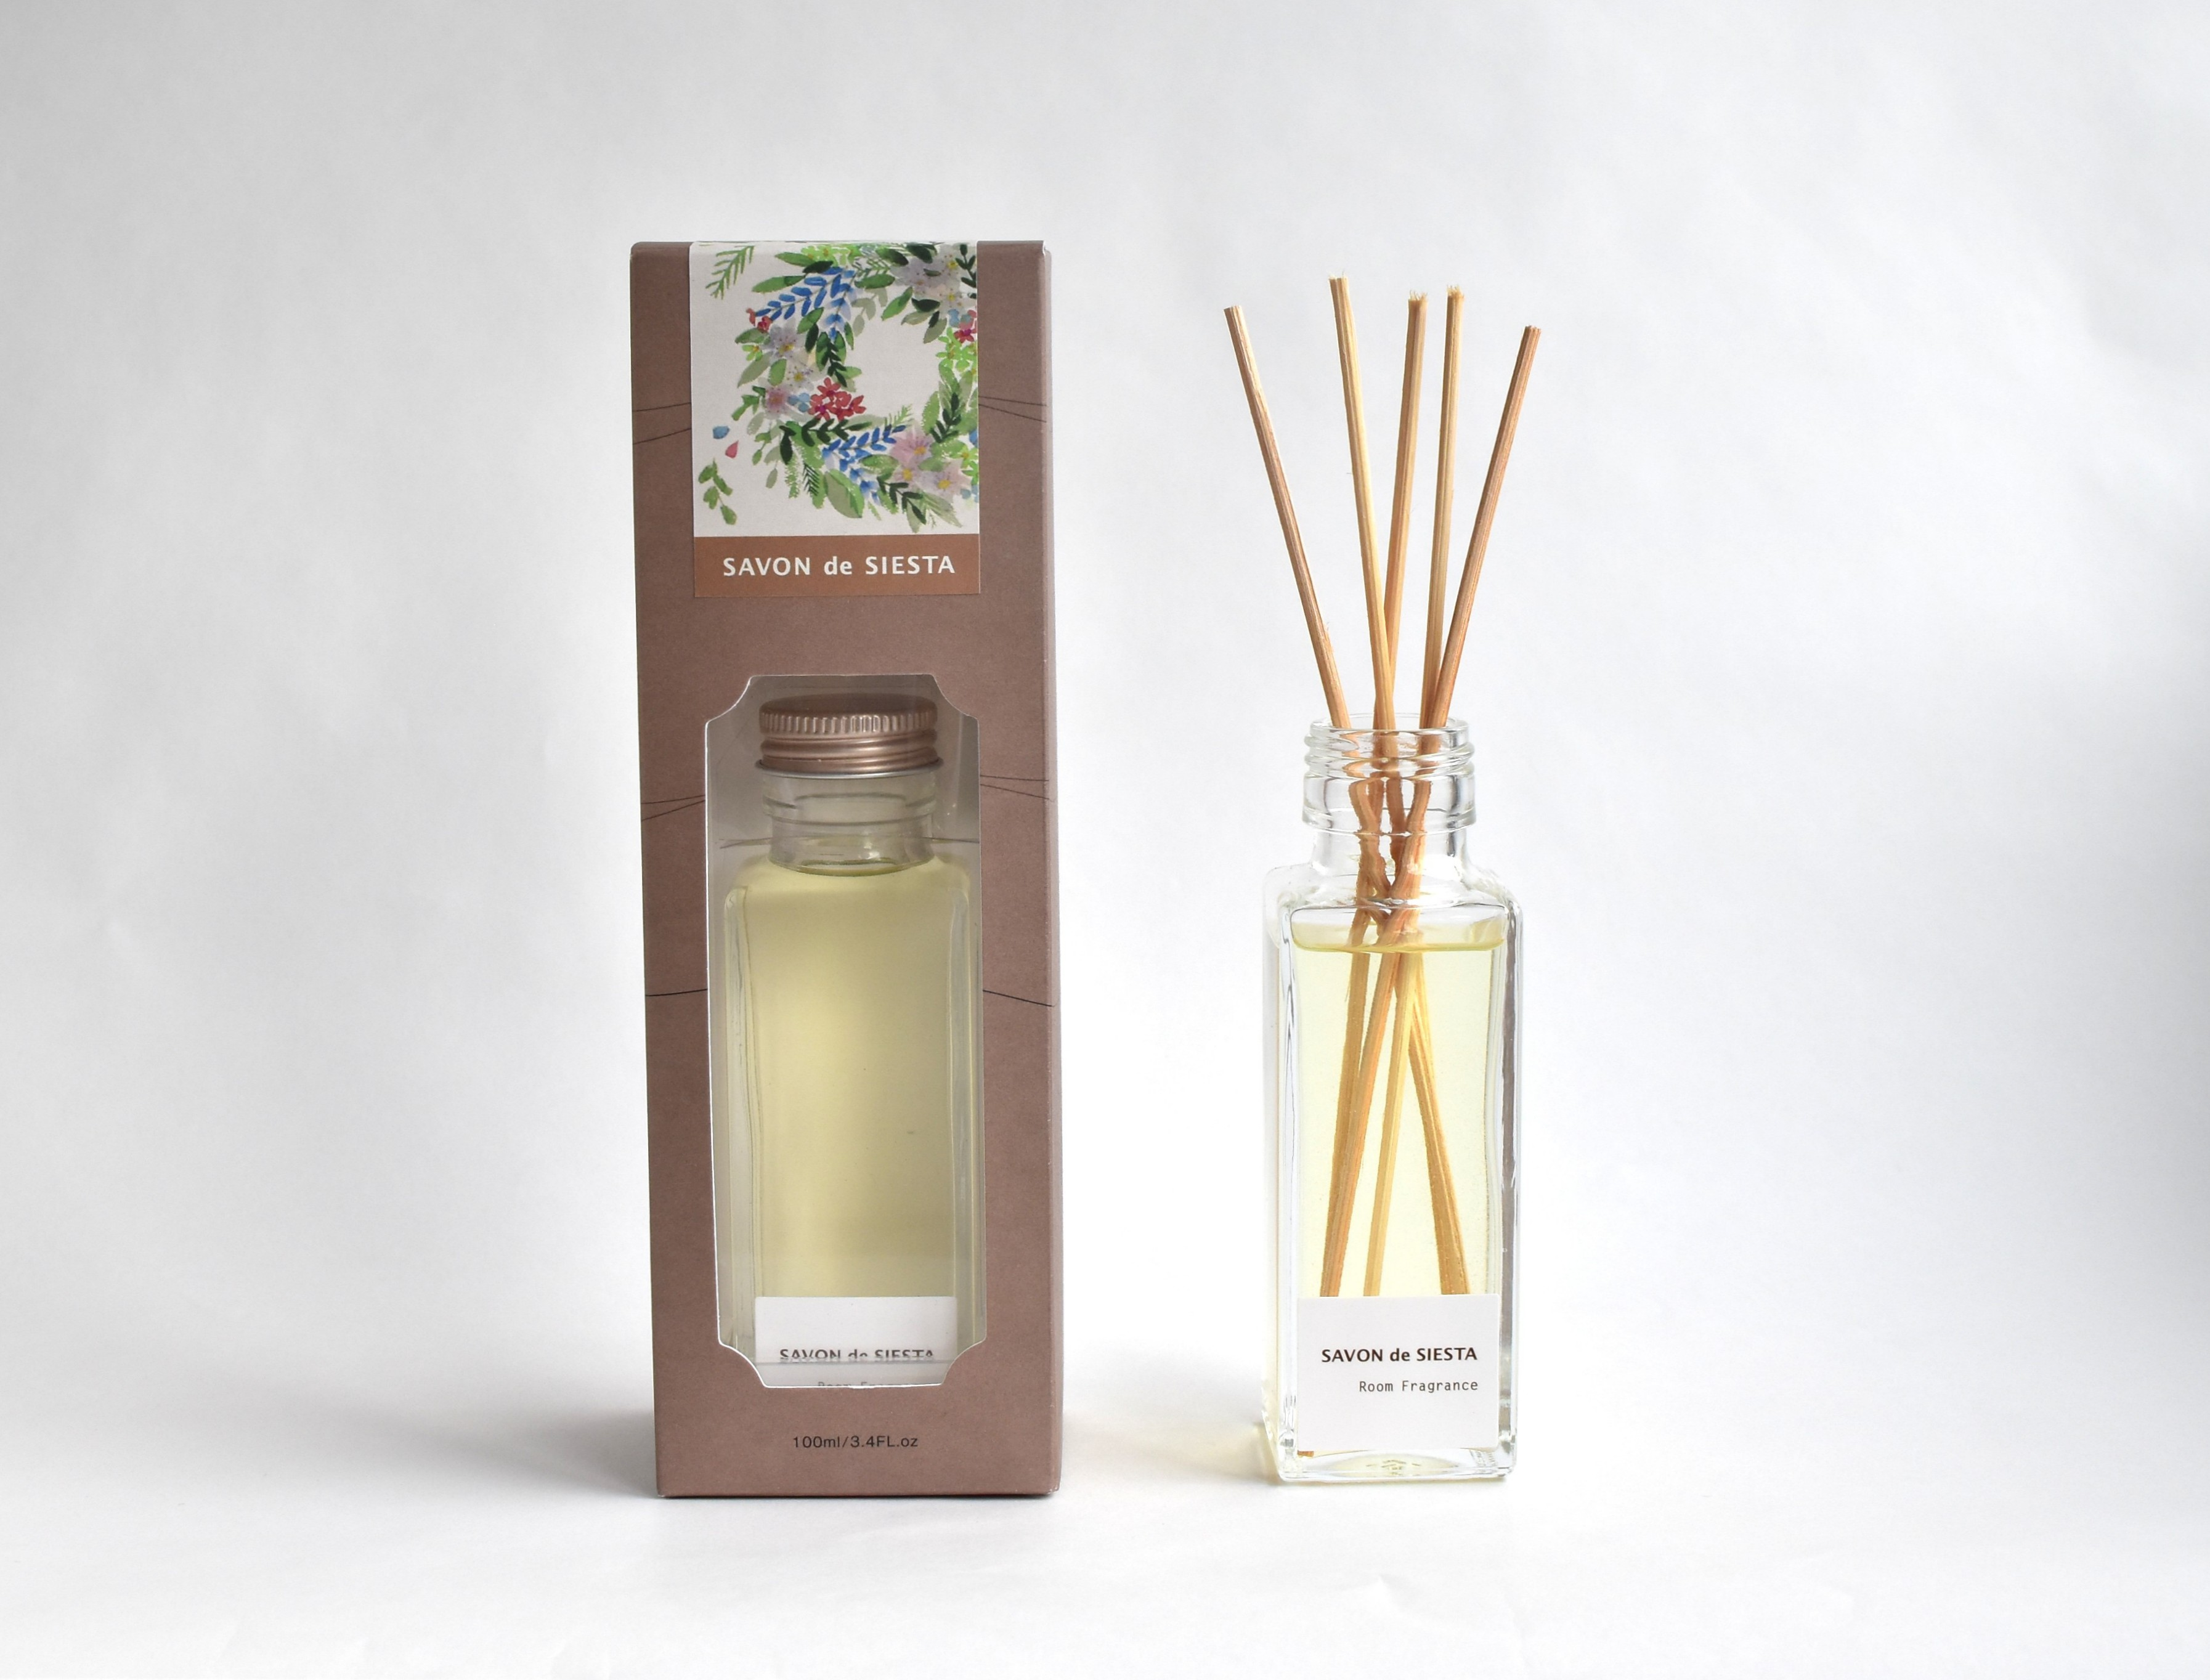 <img class='new_mark_img1' src='https://img.shop-pro.jp/img/new/icons57.gif' style='border:none;display:inline;margin:0px;padding:0px;width:auto;' />【限定】Room Fragrance ボタニカルリースの香り